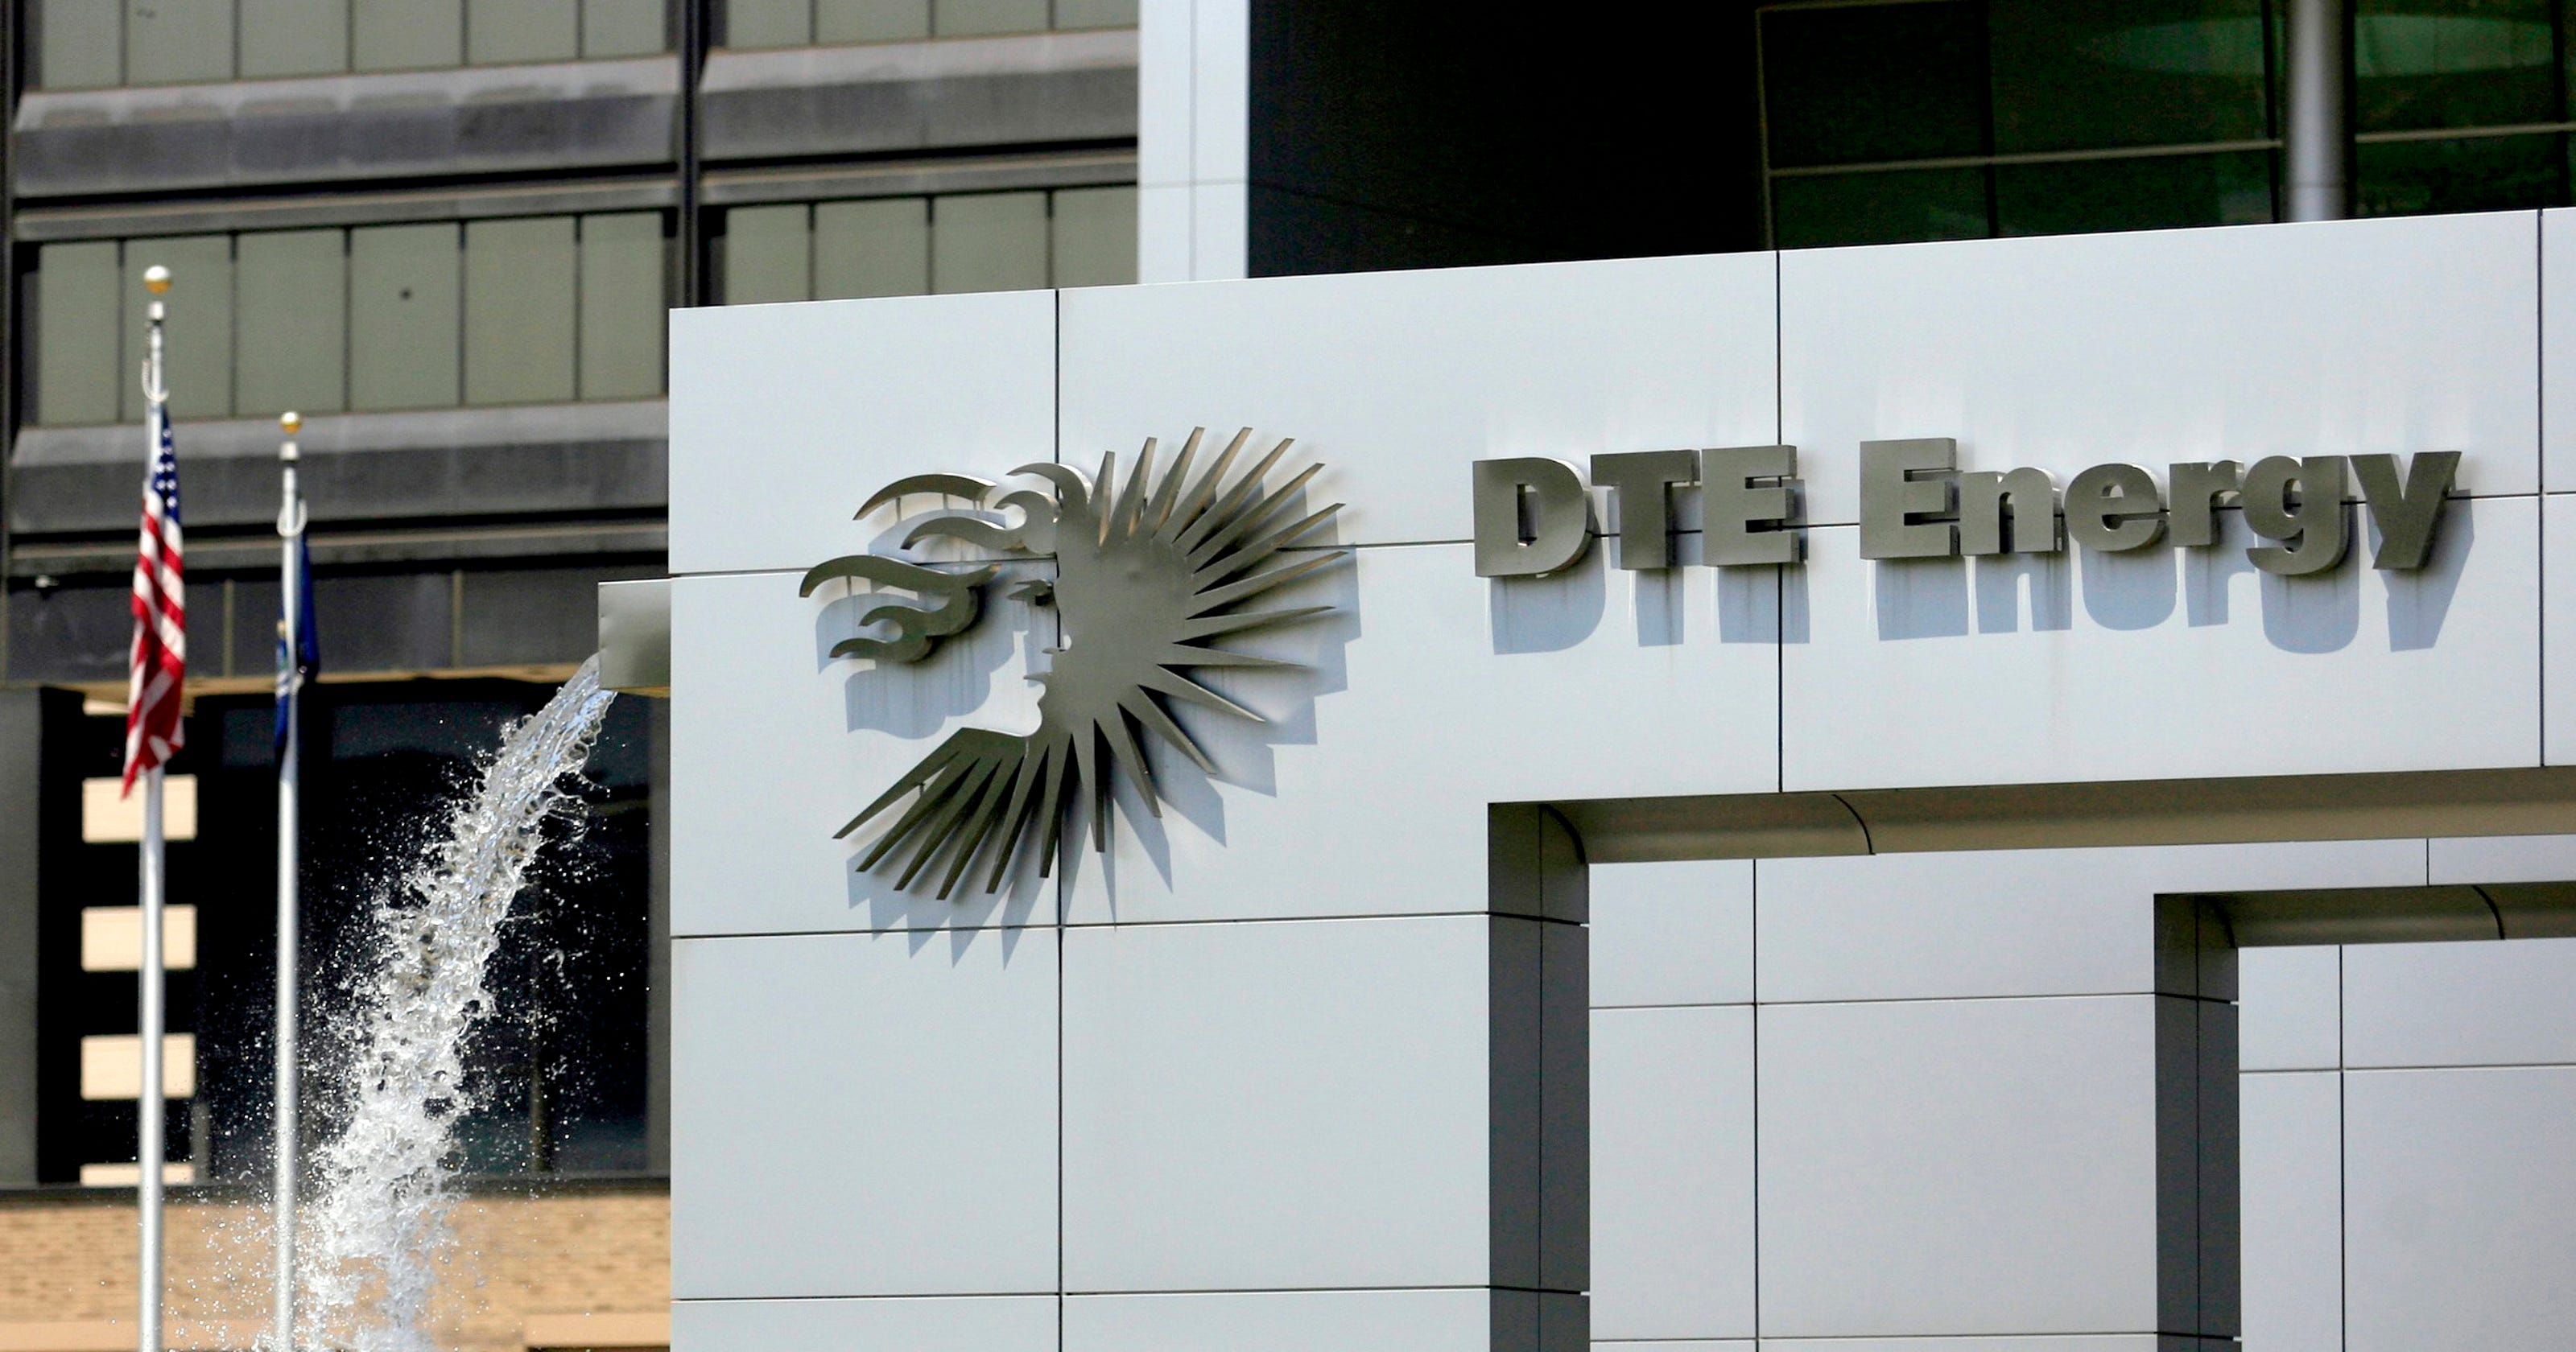 DTE Energy will refund $27M to its electric customers